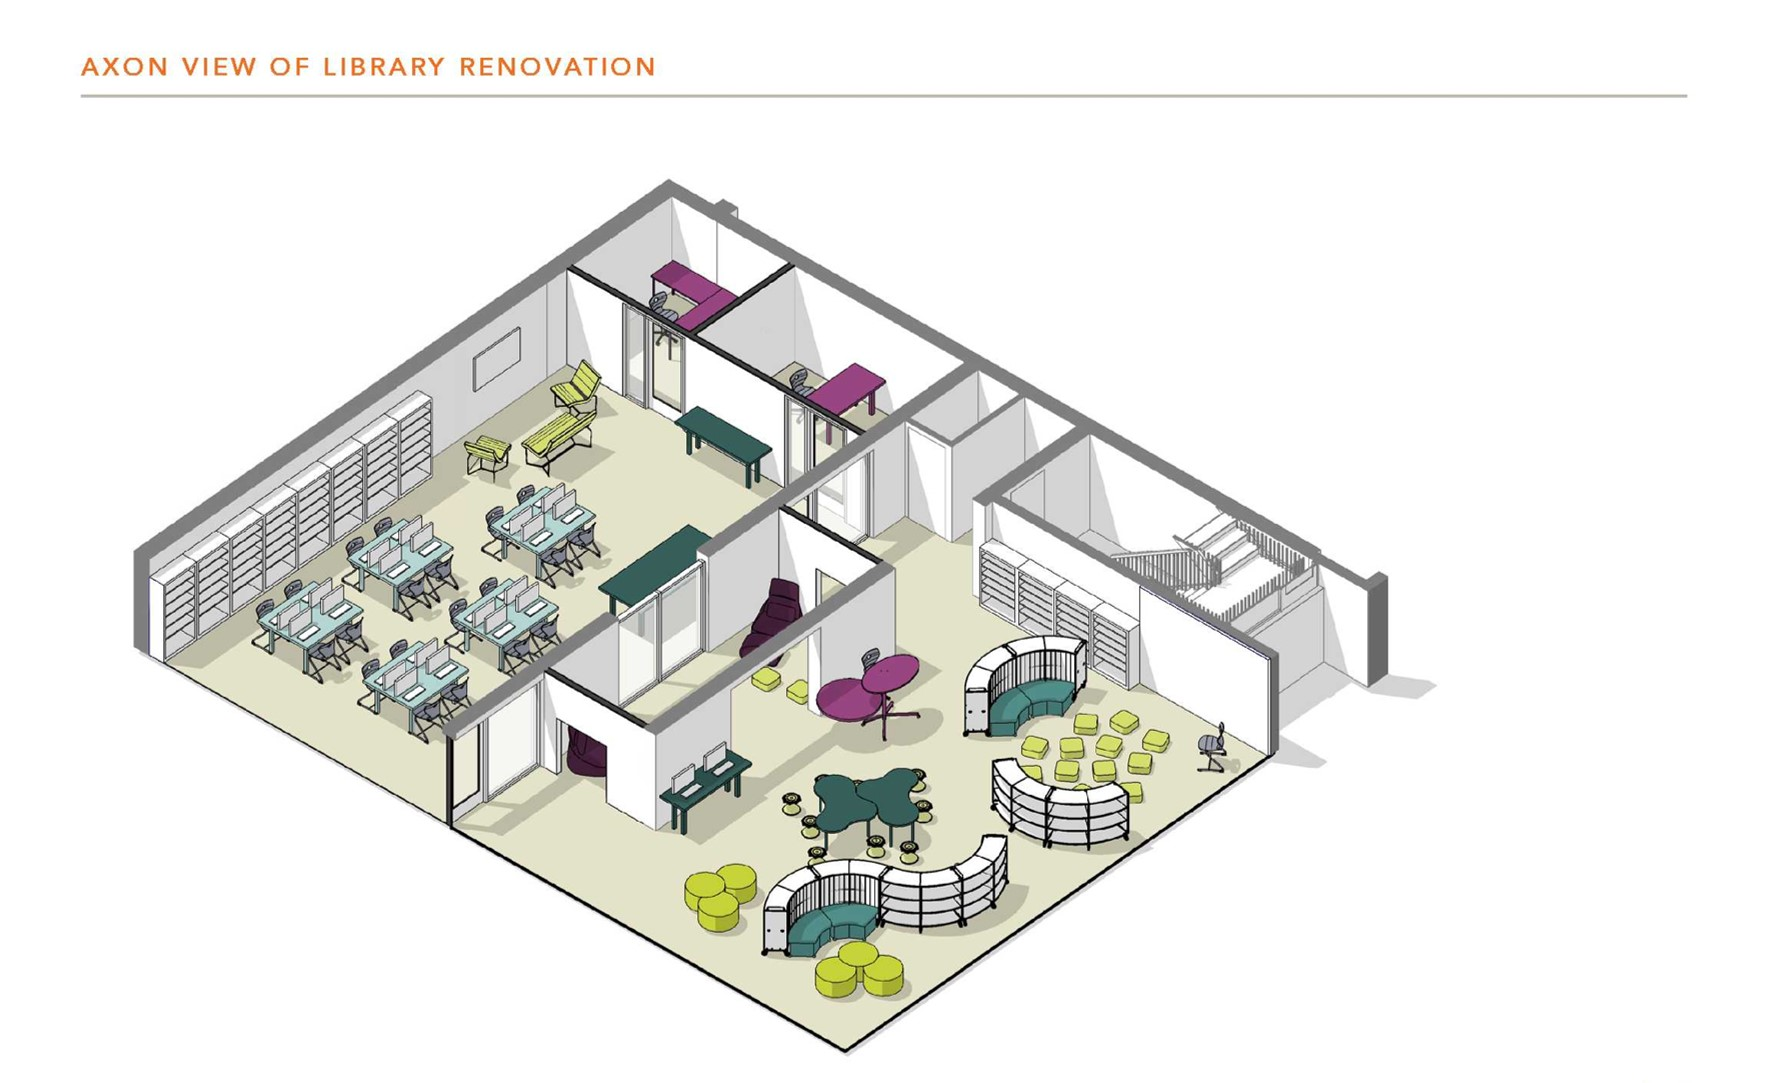 Axon view of library renovation